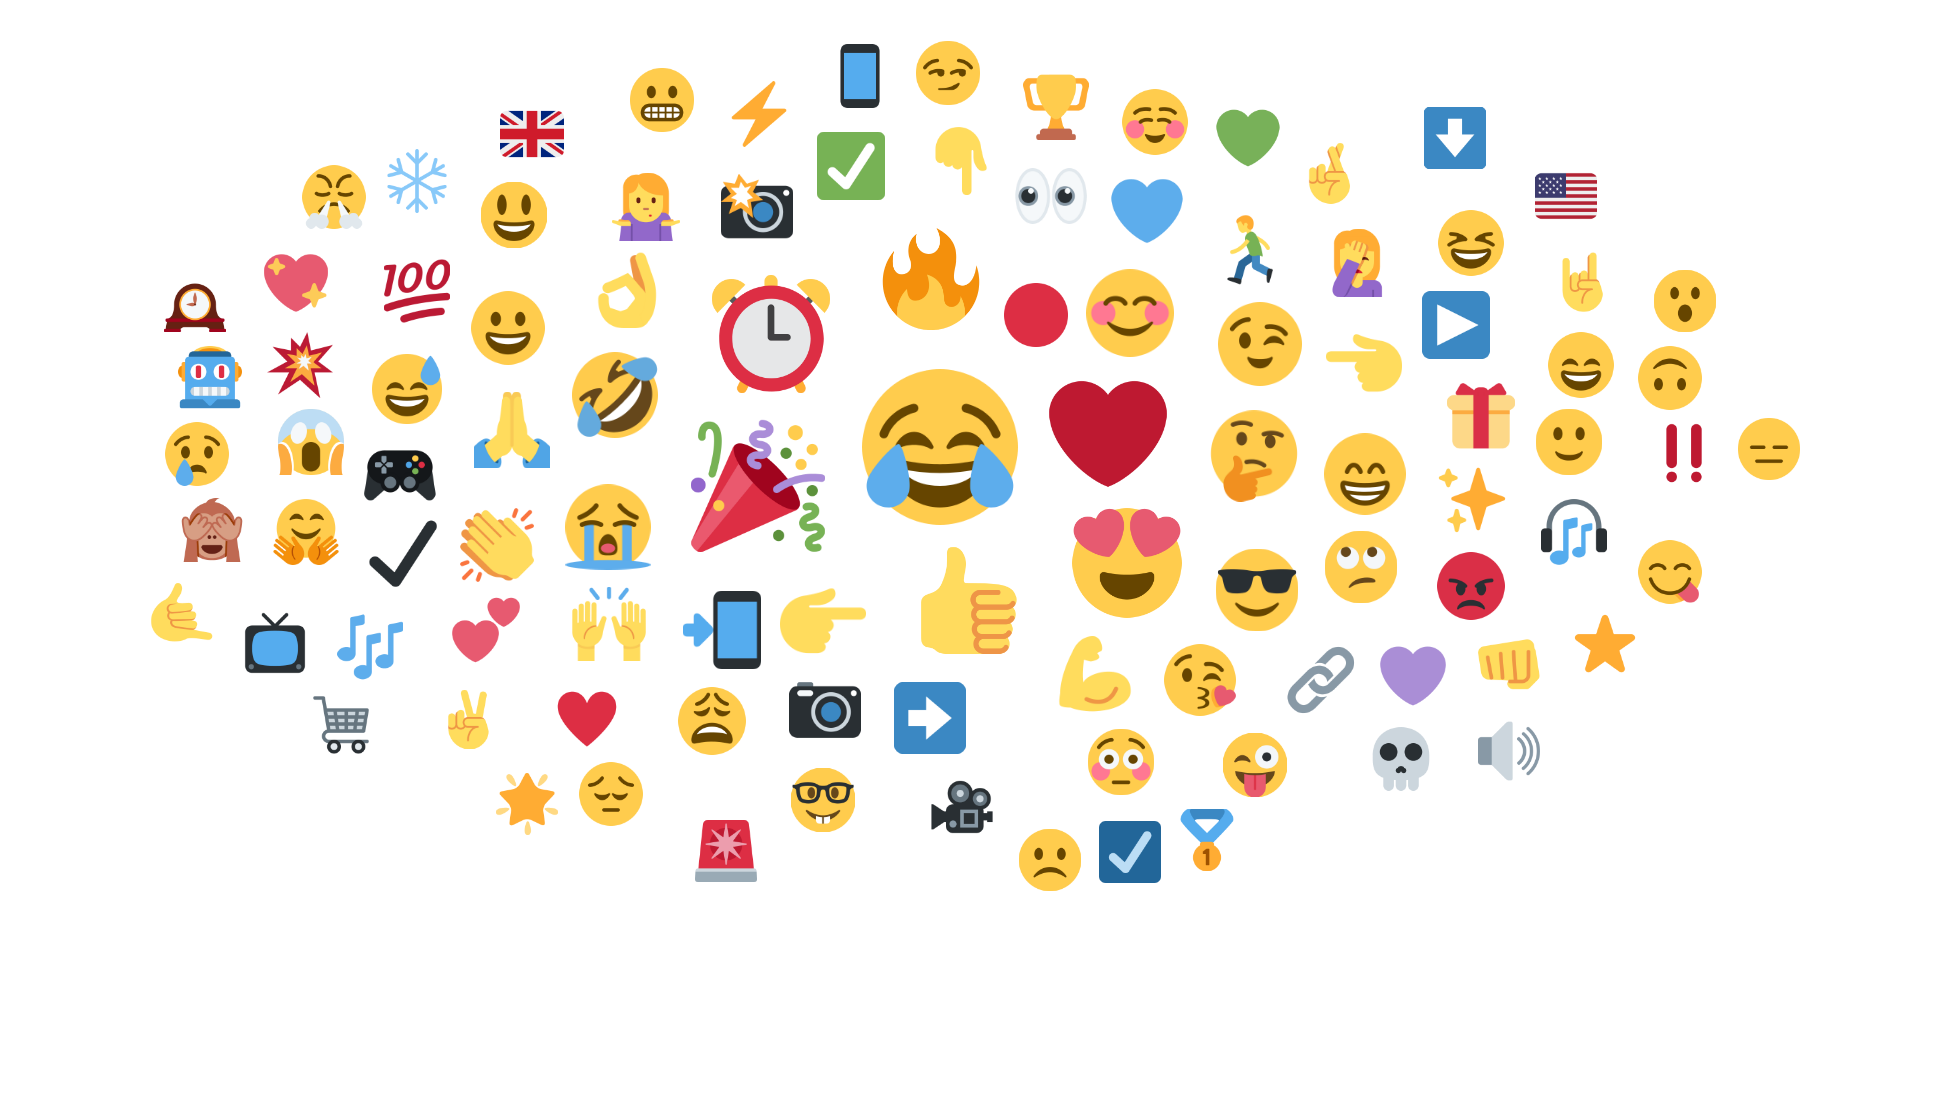 Most used emojis for consumer technology brands